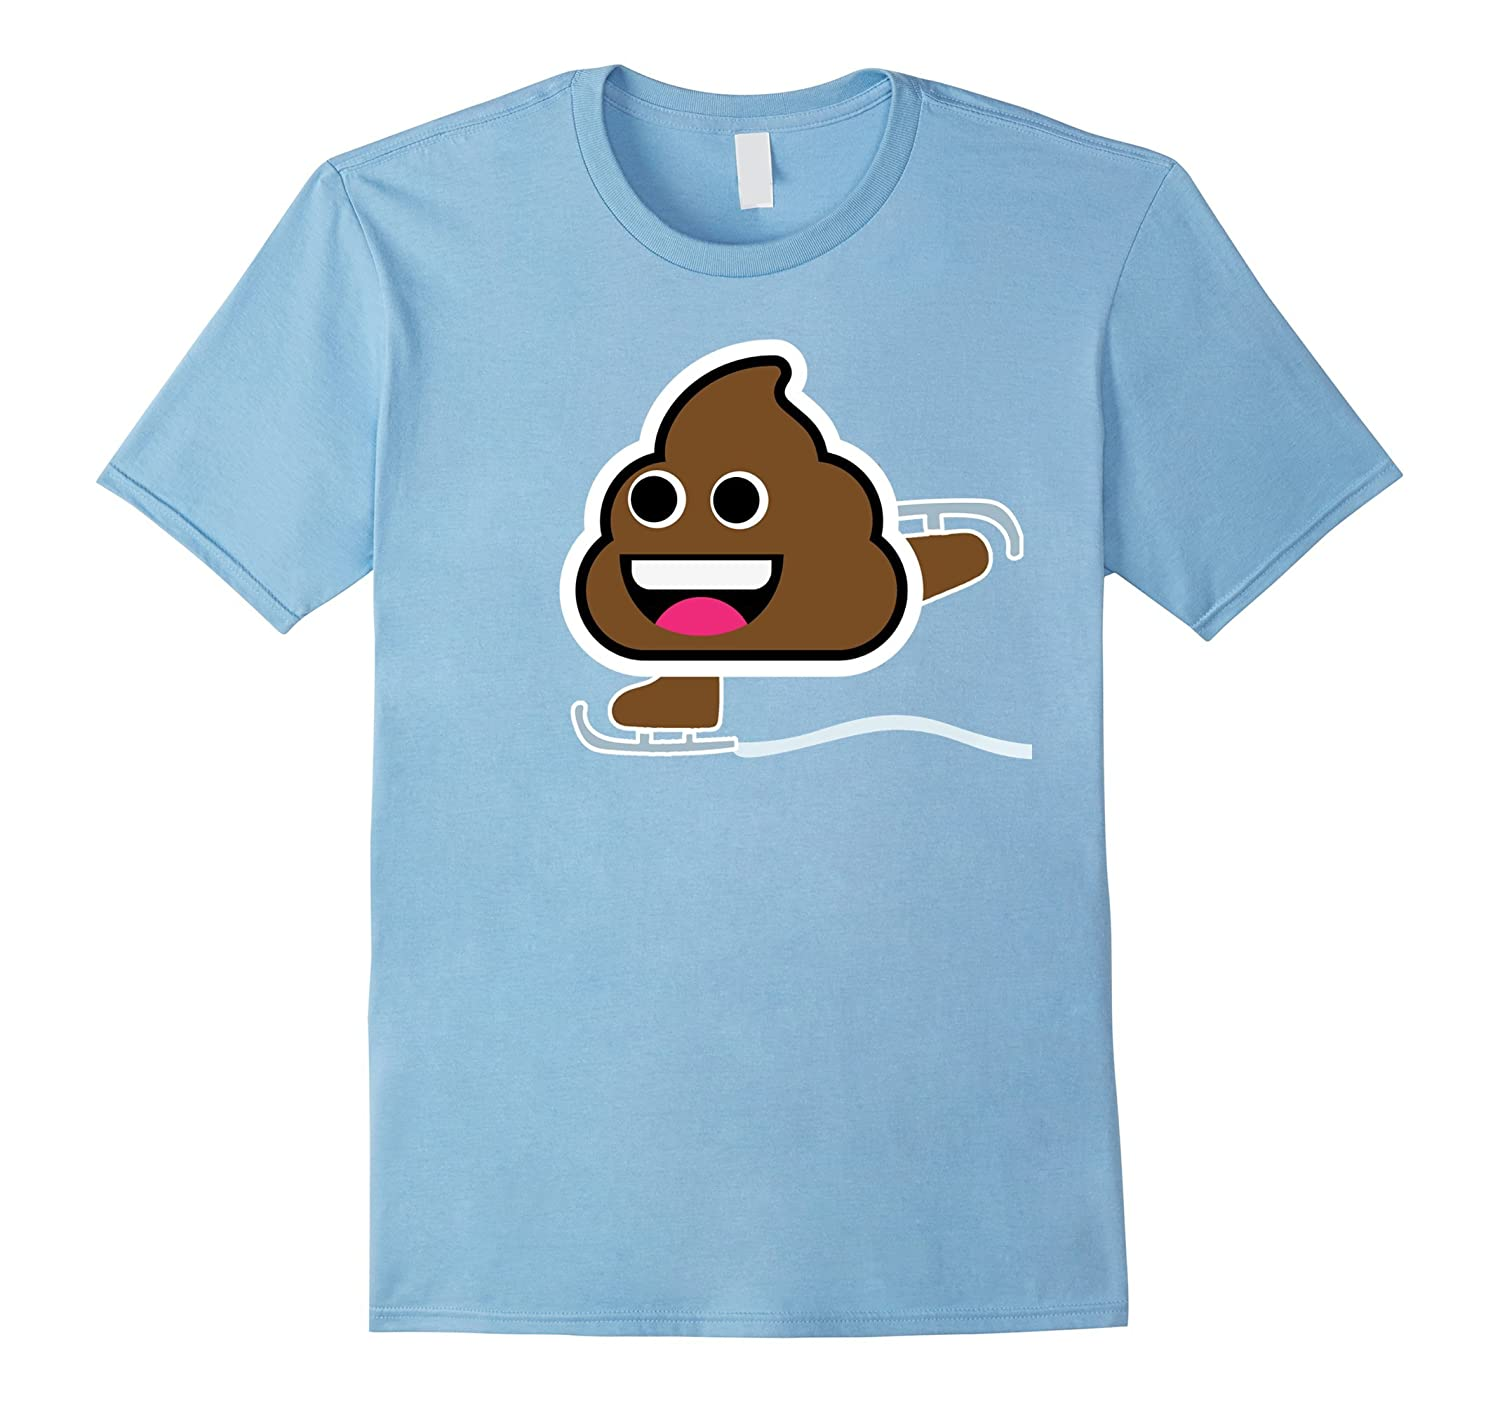 Ice Skating Poop Emoji T-shirt! Figure Skating Speed Skating-ANZ